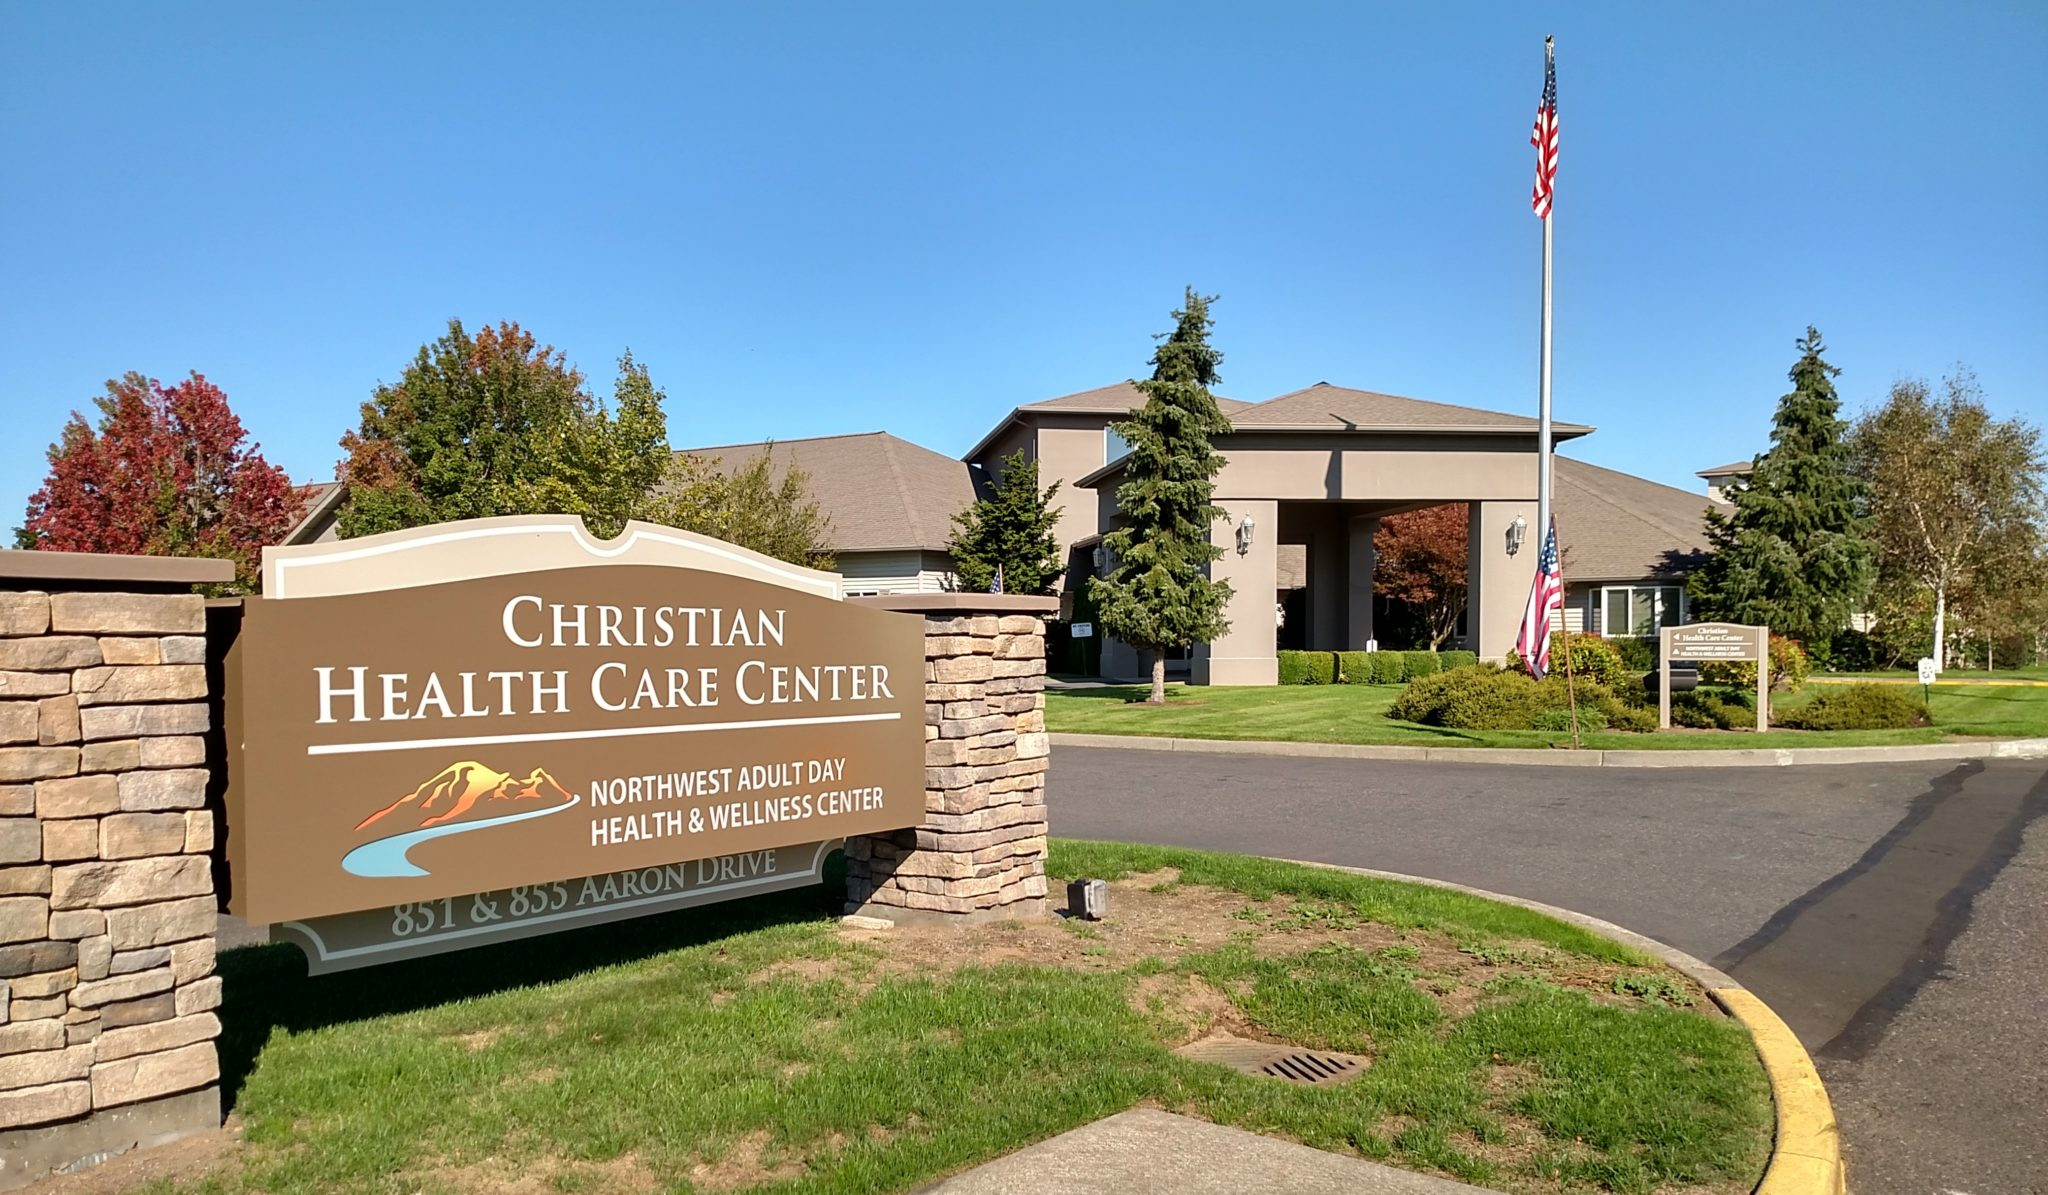 Christian Health Care Center — A 'Tradition of Caring' for 60 Years